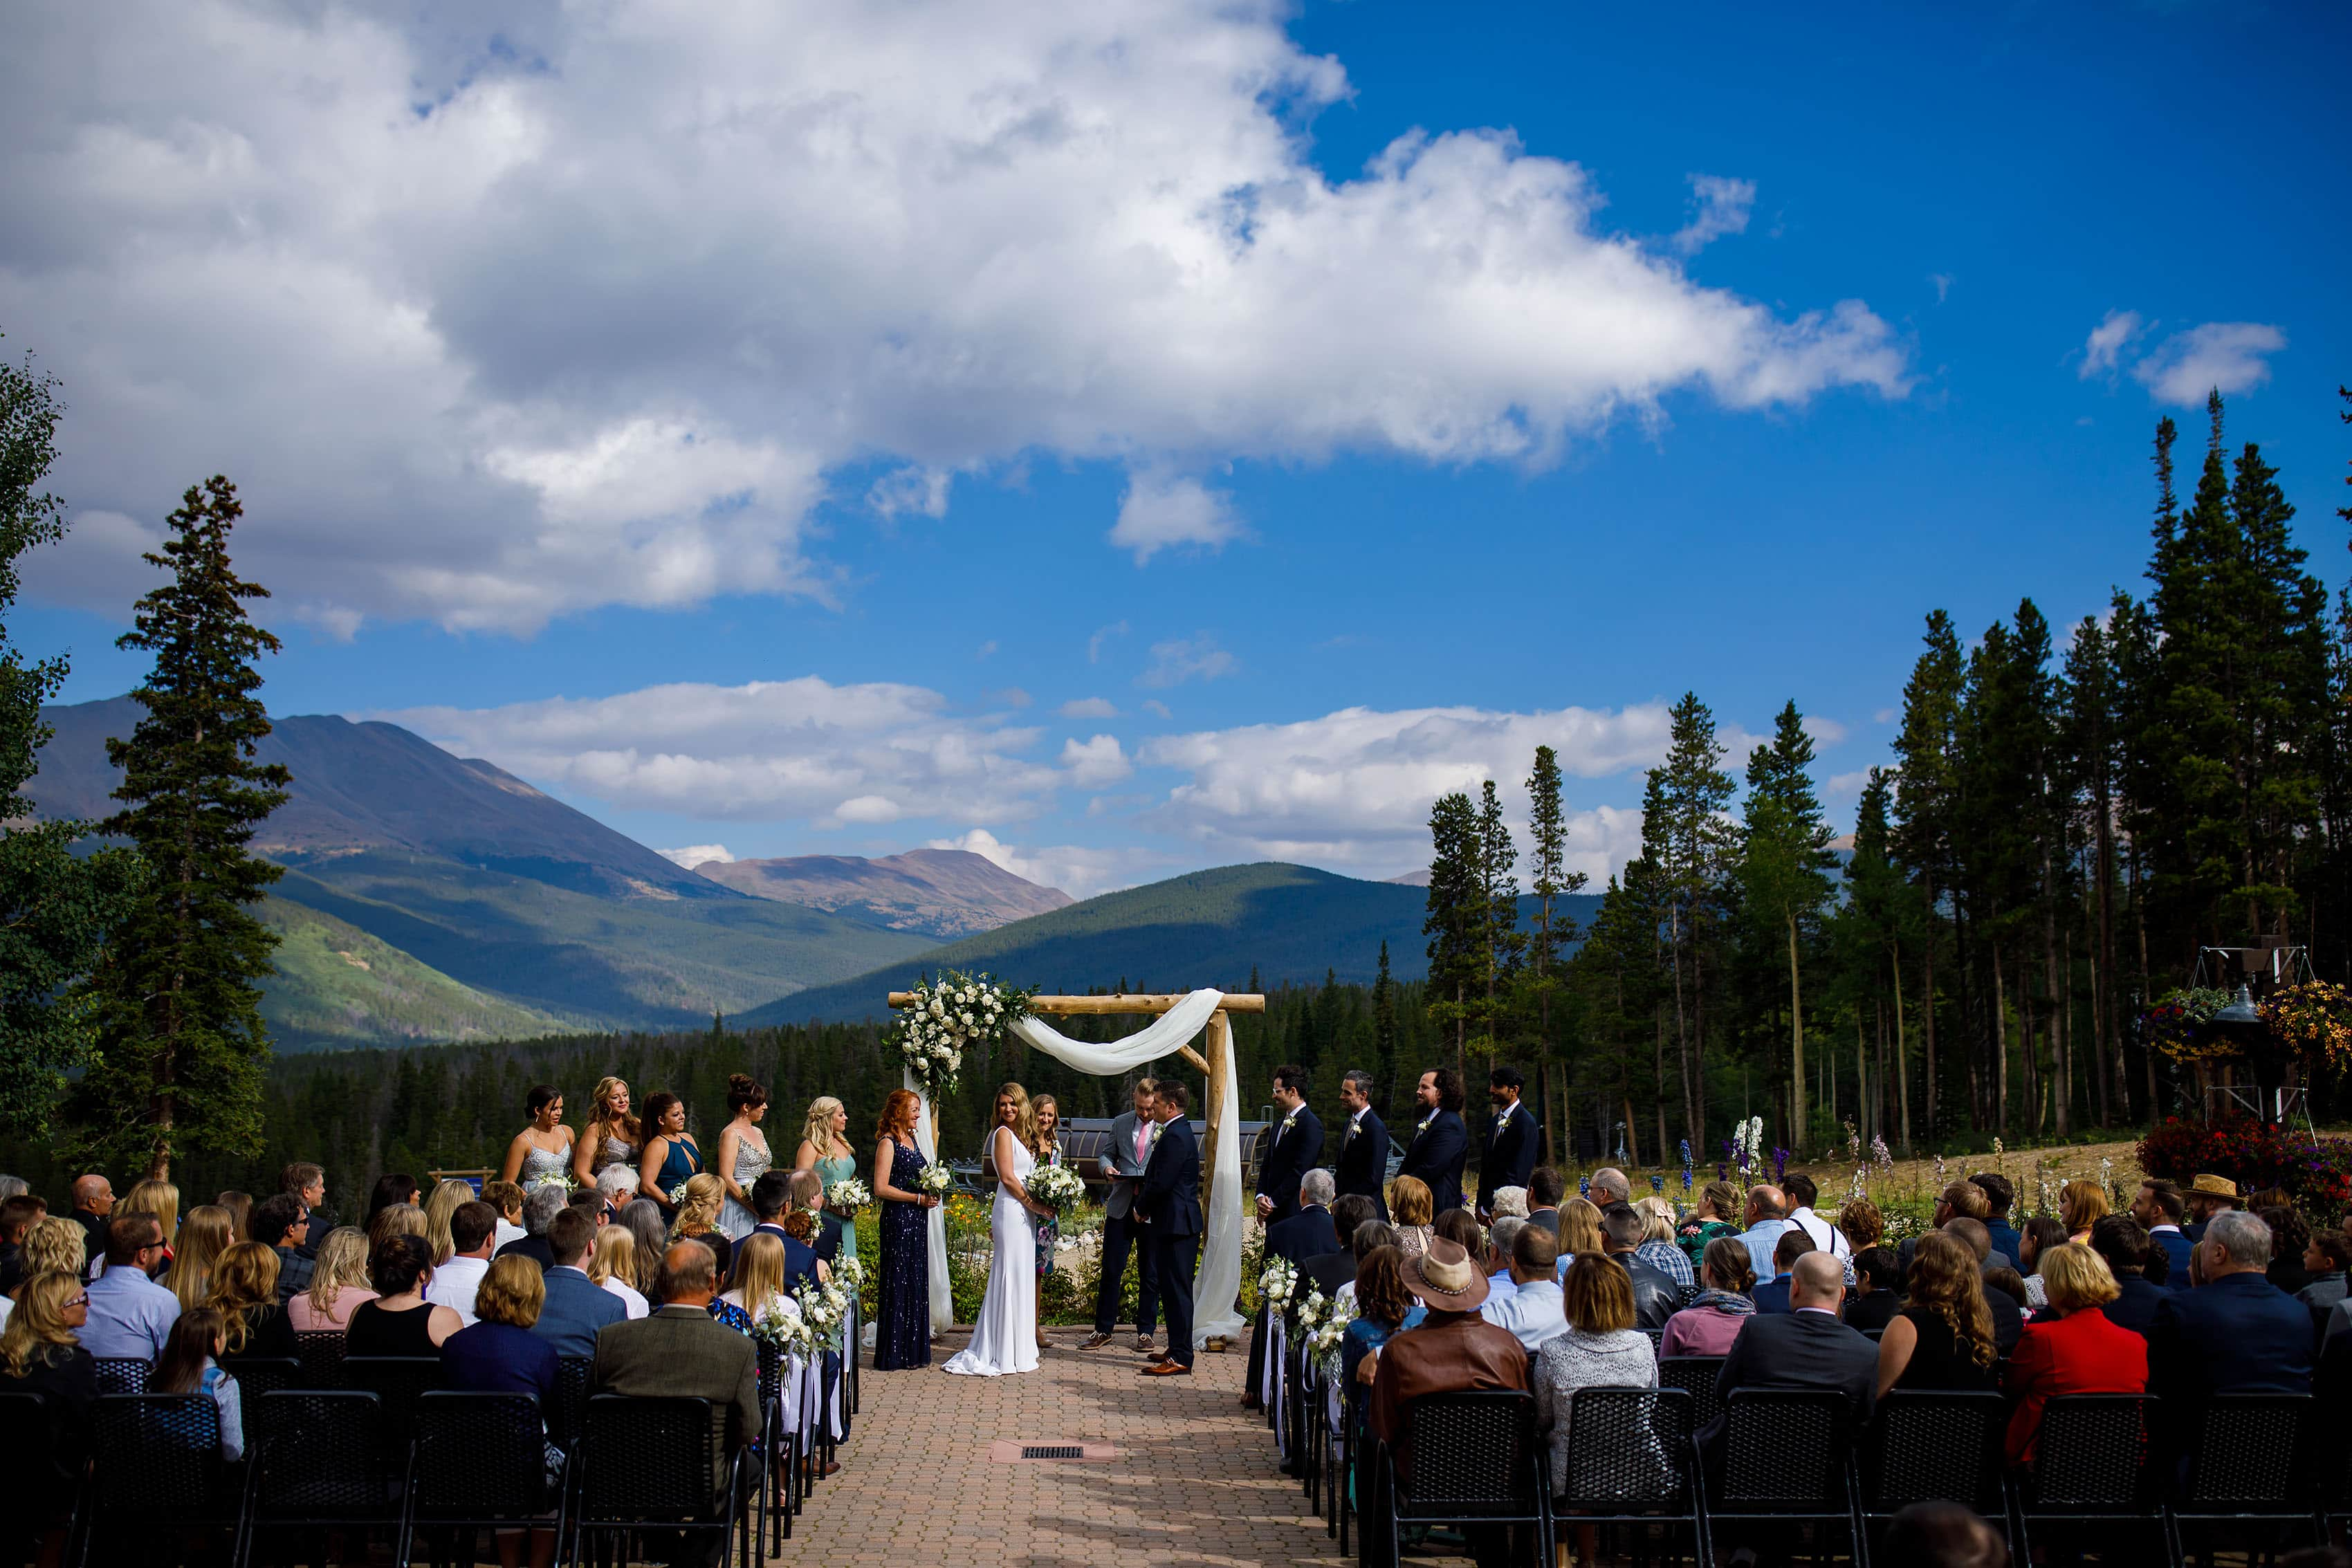 Wedding ceremony at TenMile Station